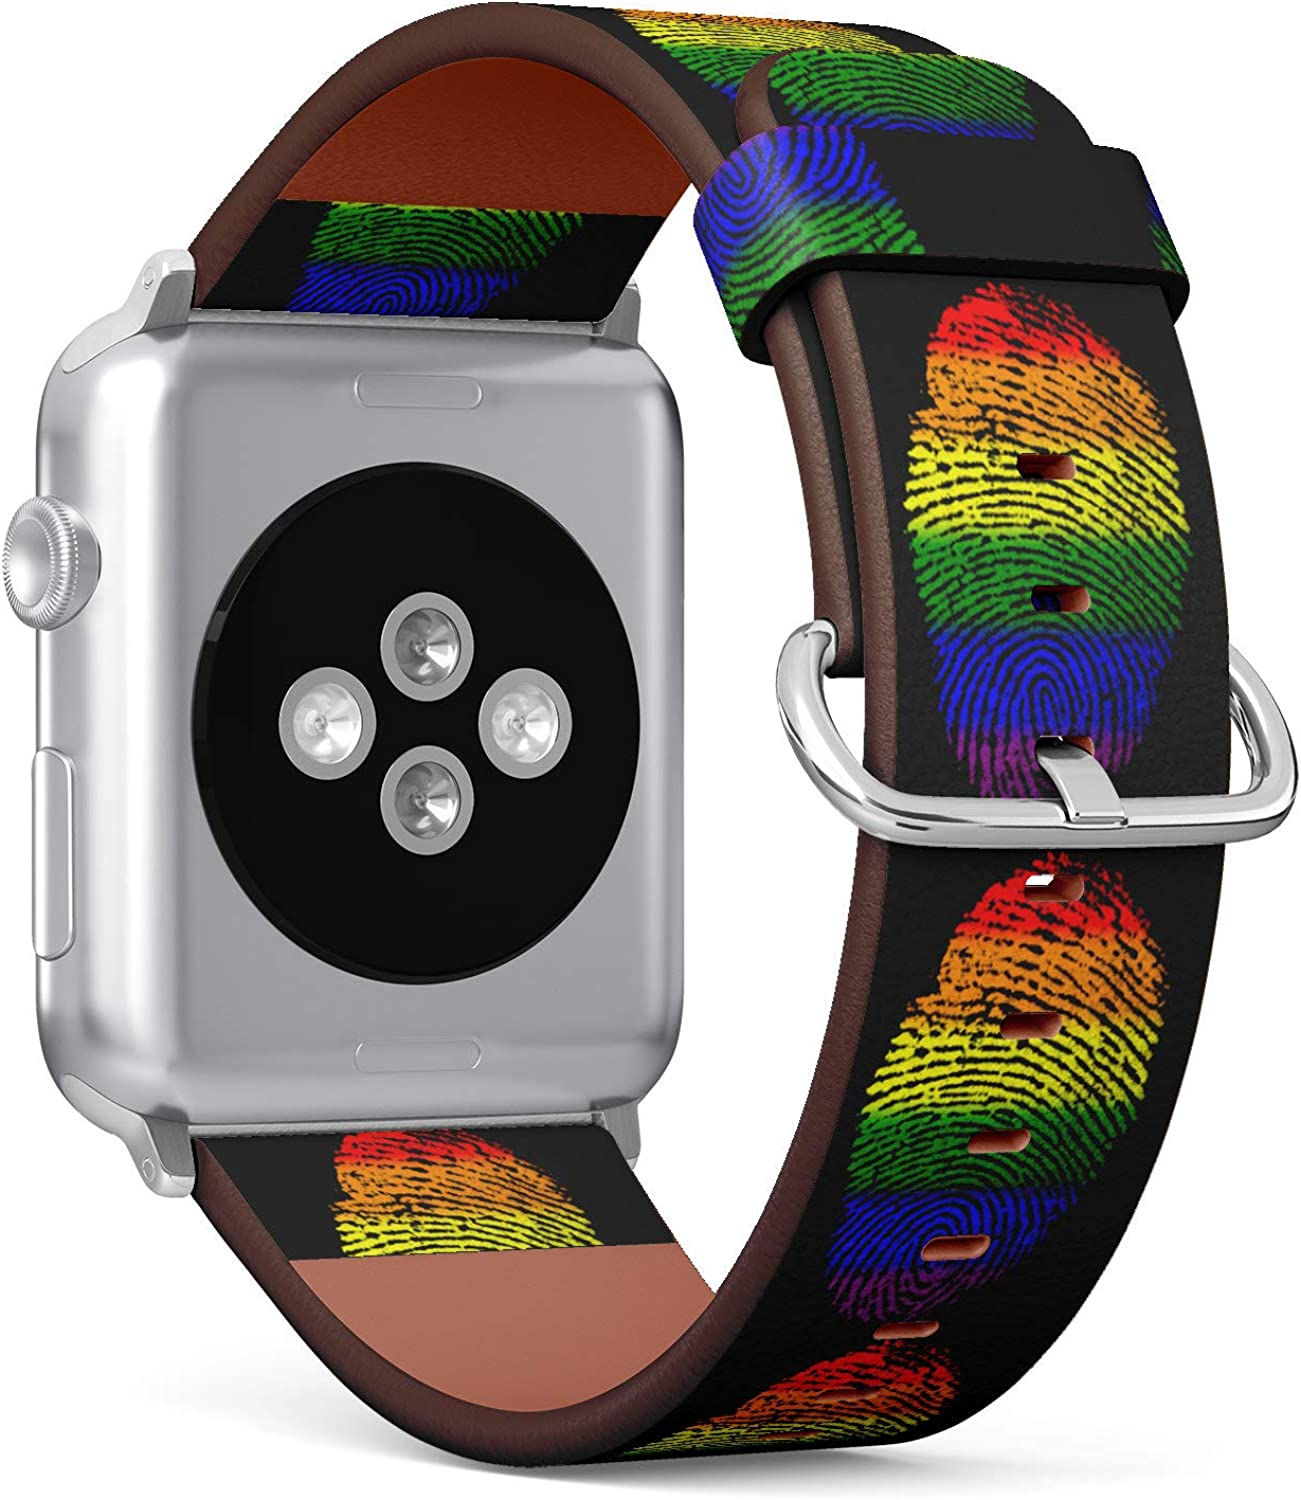 (LGBT Rainbow Color Fingerprint) Patterned Leather Wristband Strap for Apple Watch Series 4/3/2/1 gen,Replacement for iWatch 42mm / 44mm Bands